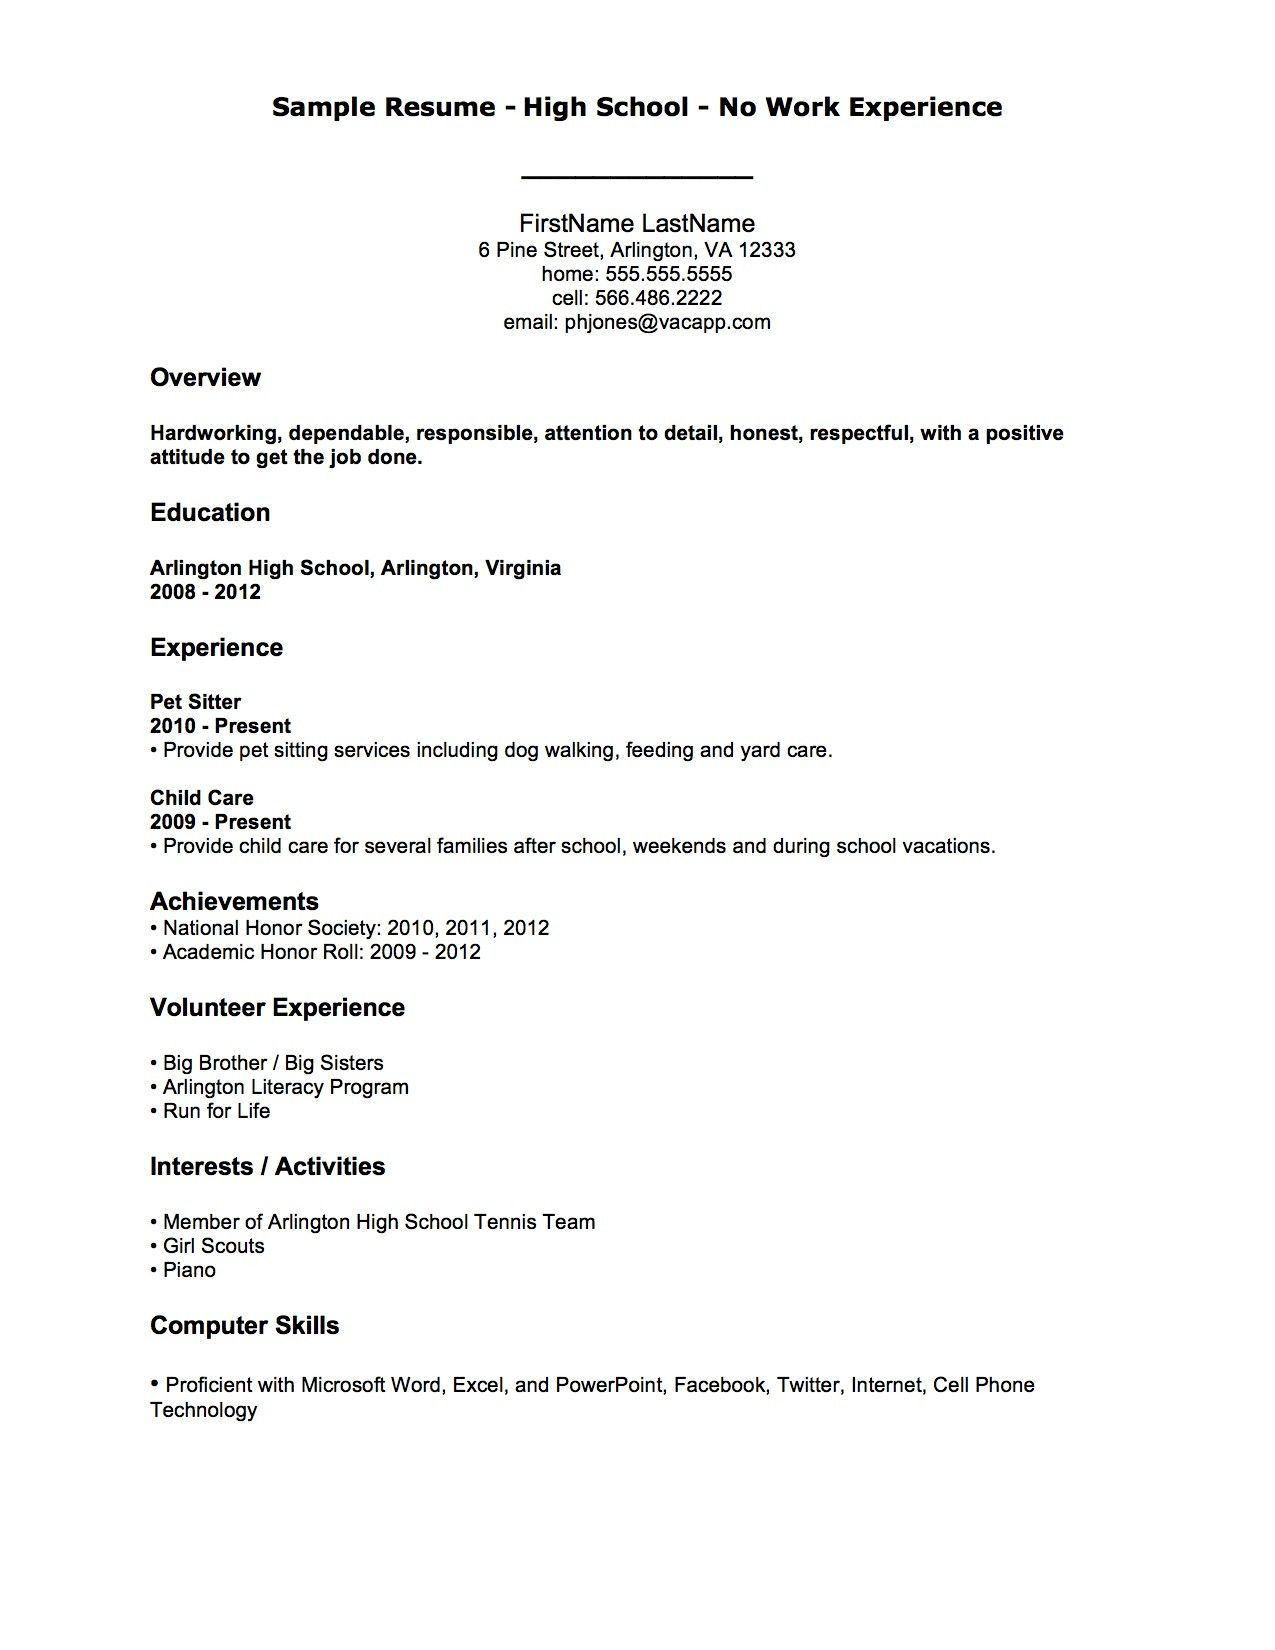 How To Write A Resume For A First Job How To Write A Resume For A Job With No Experience